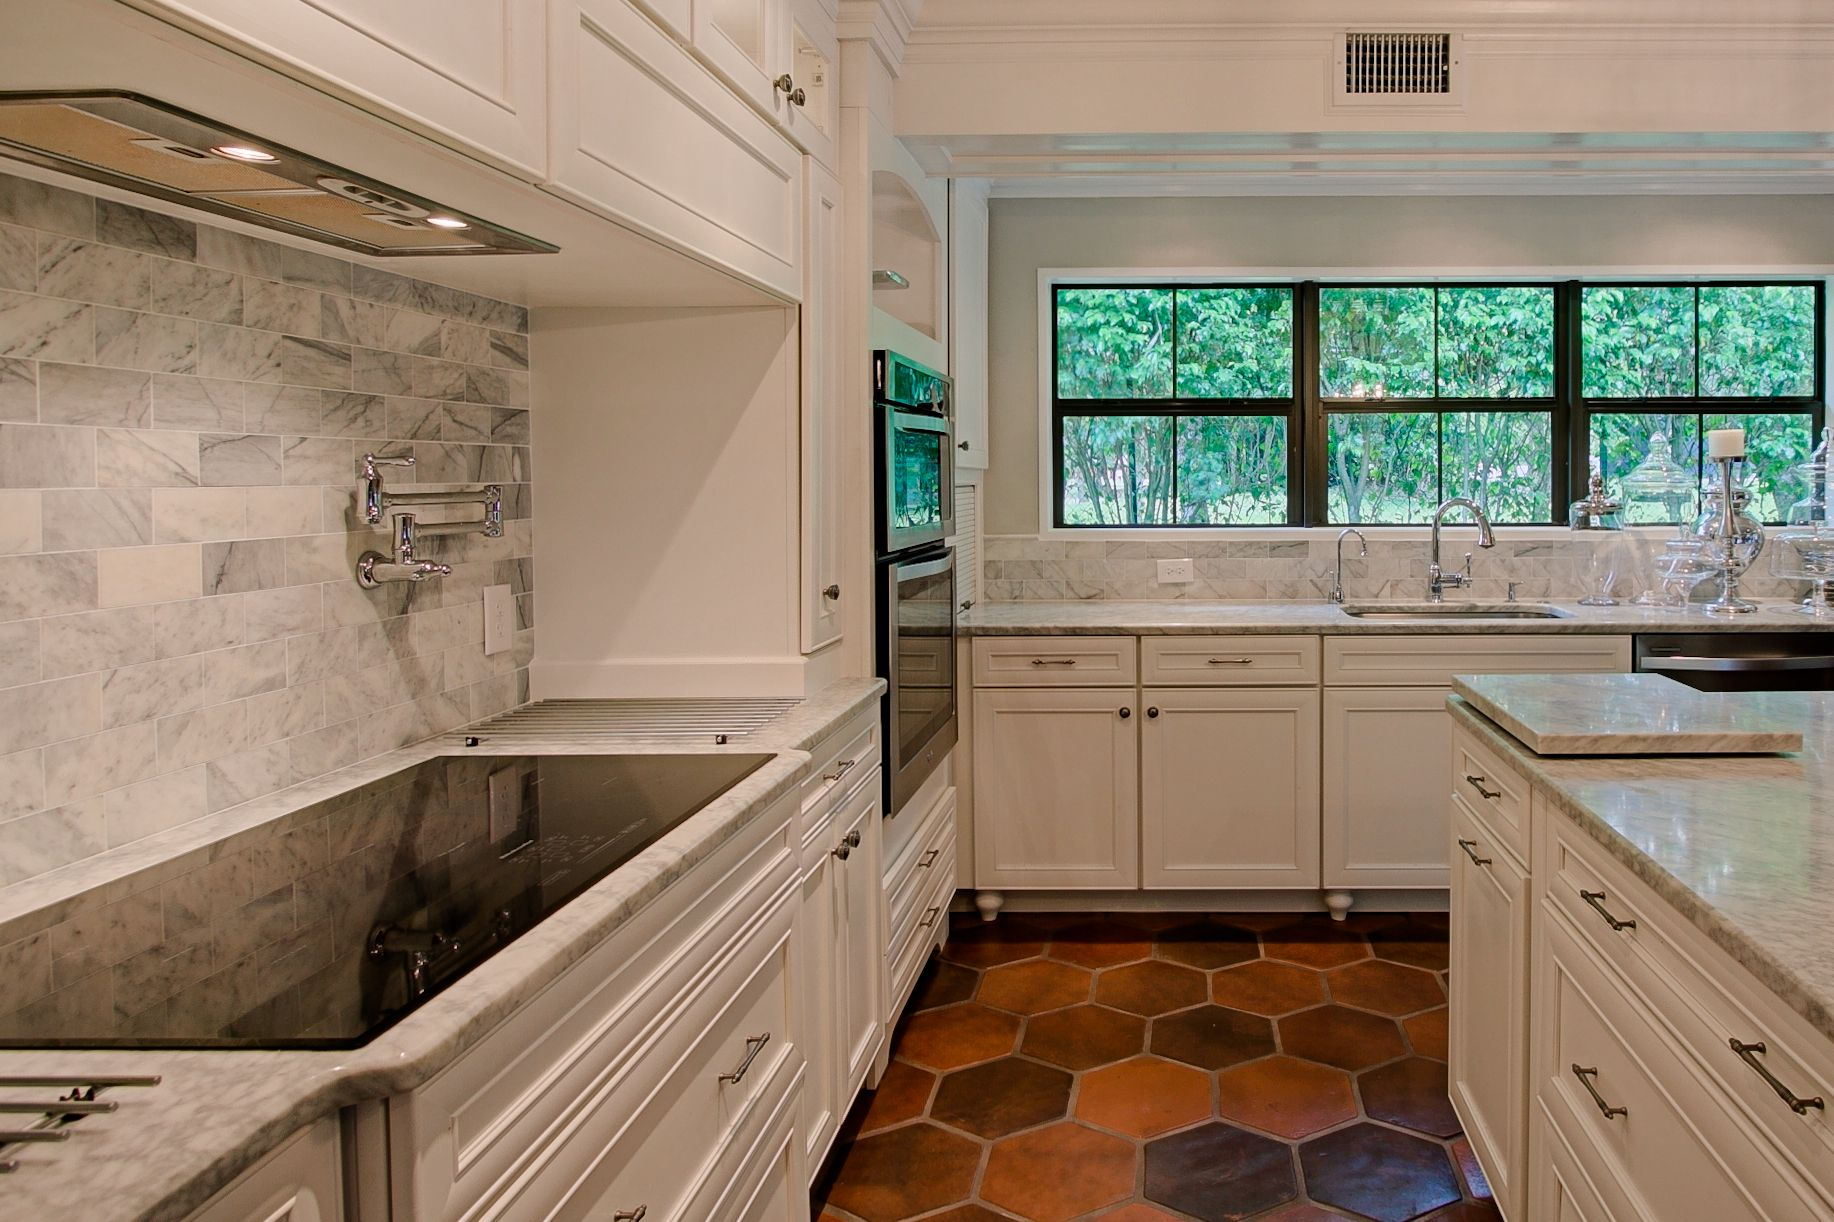 Kitchens With Terracotta Floors Manganese Saltillo Tile Shown In 12x12 Hexagon Terra Cotta Floor